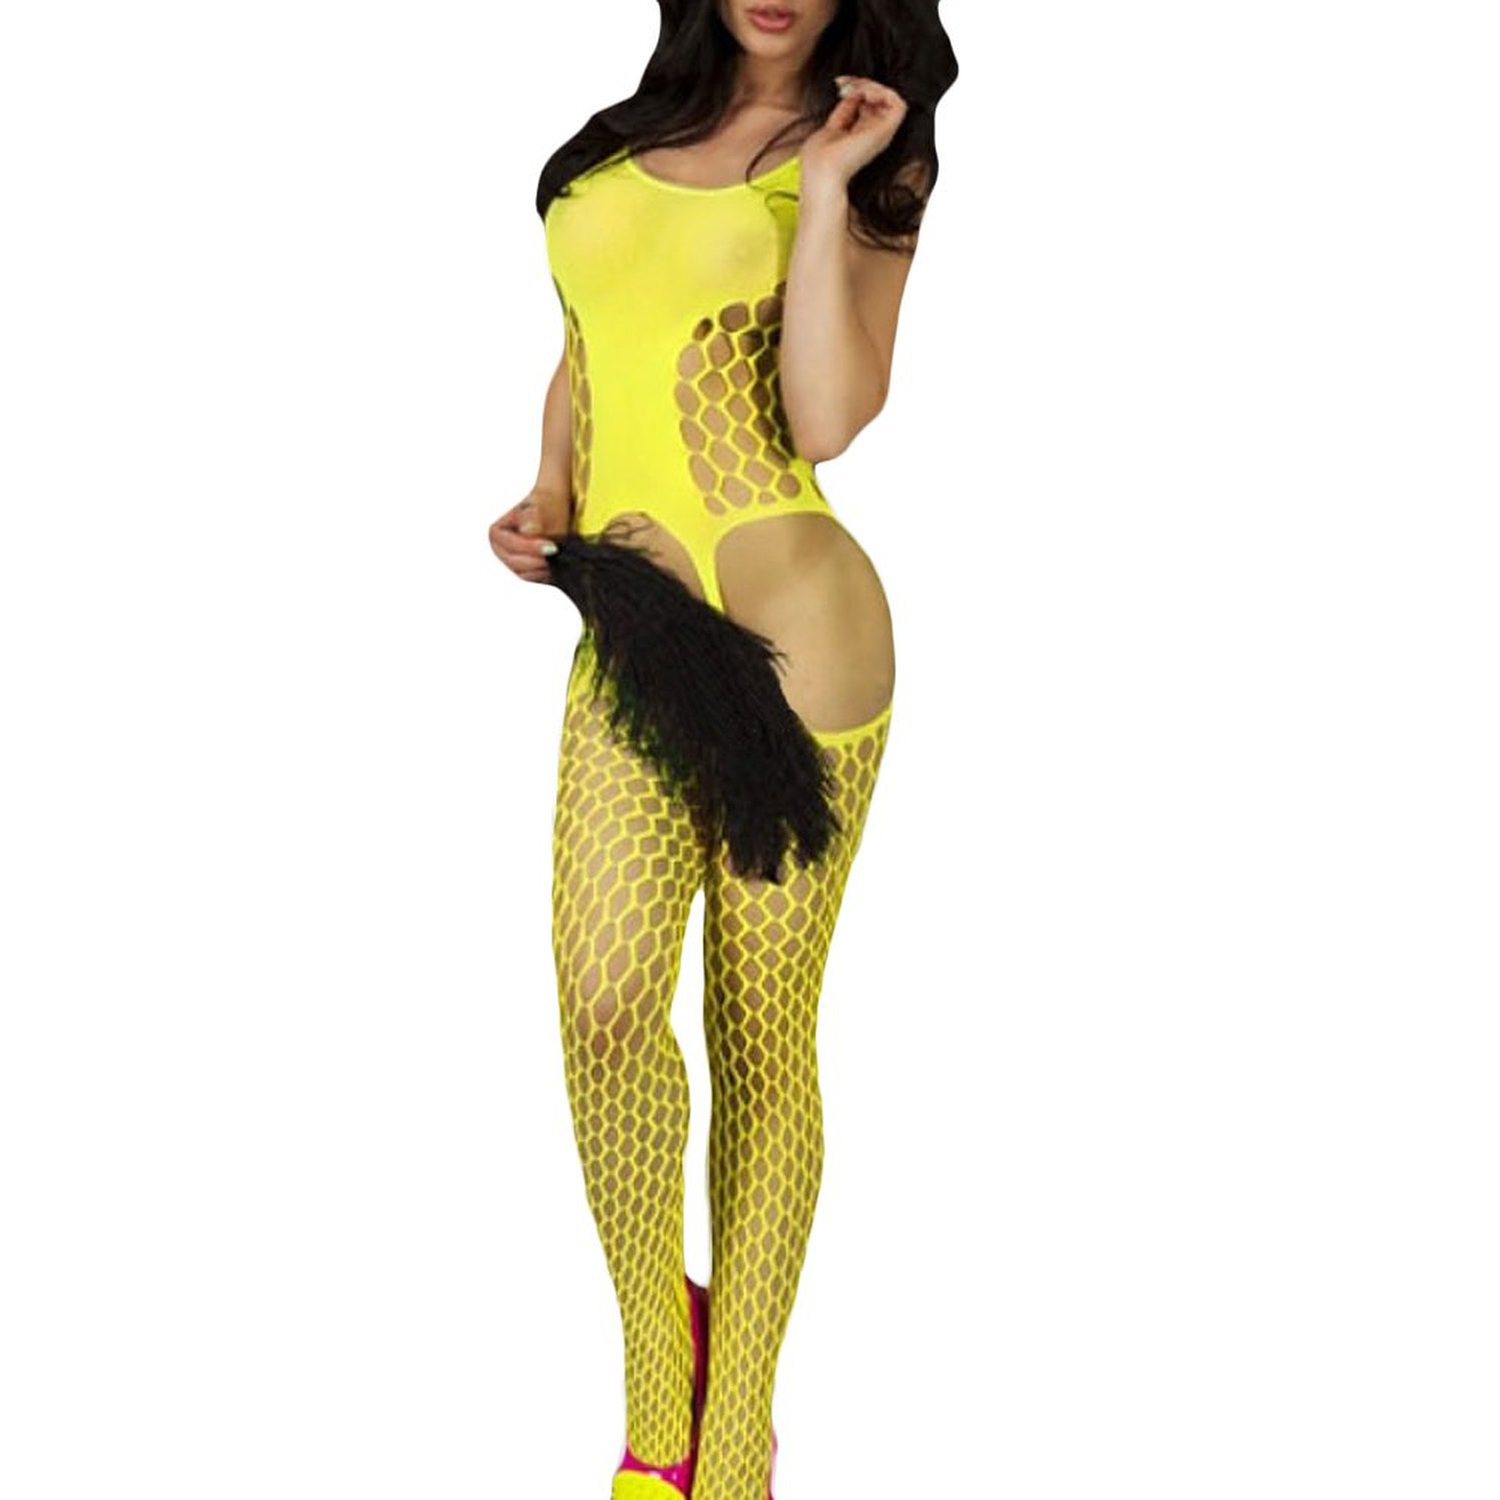 SAF 2016 NEW Sexy Women Lingerie Fish Net Cutout Sheer Panel Front Sleeveless Crotchless Body Stocking Bodysuit Yellow